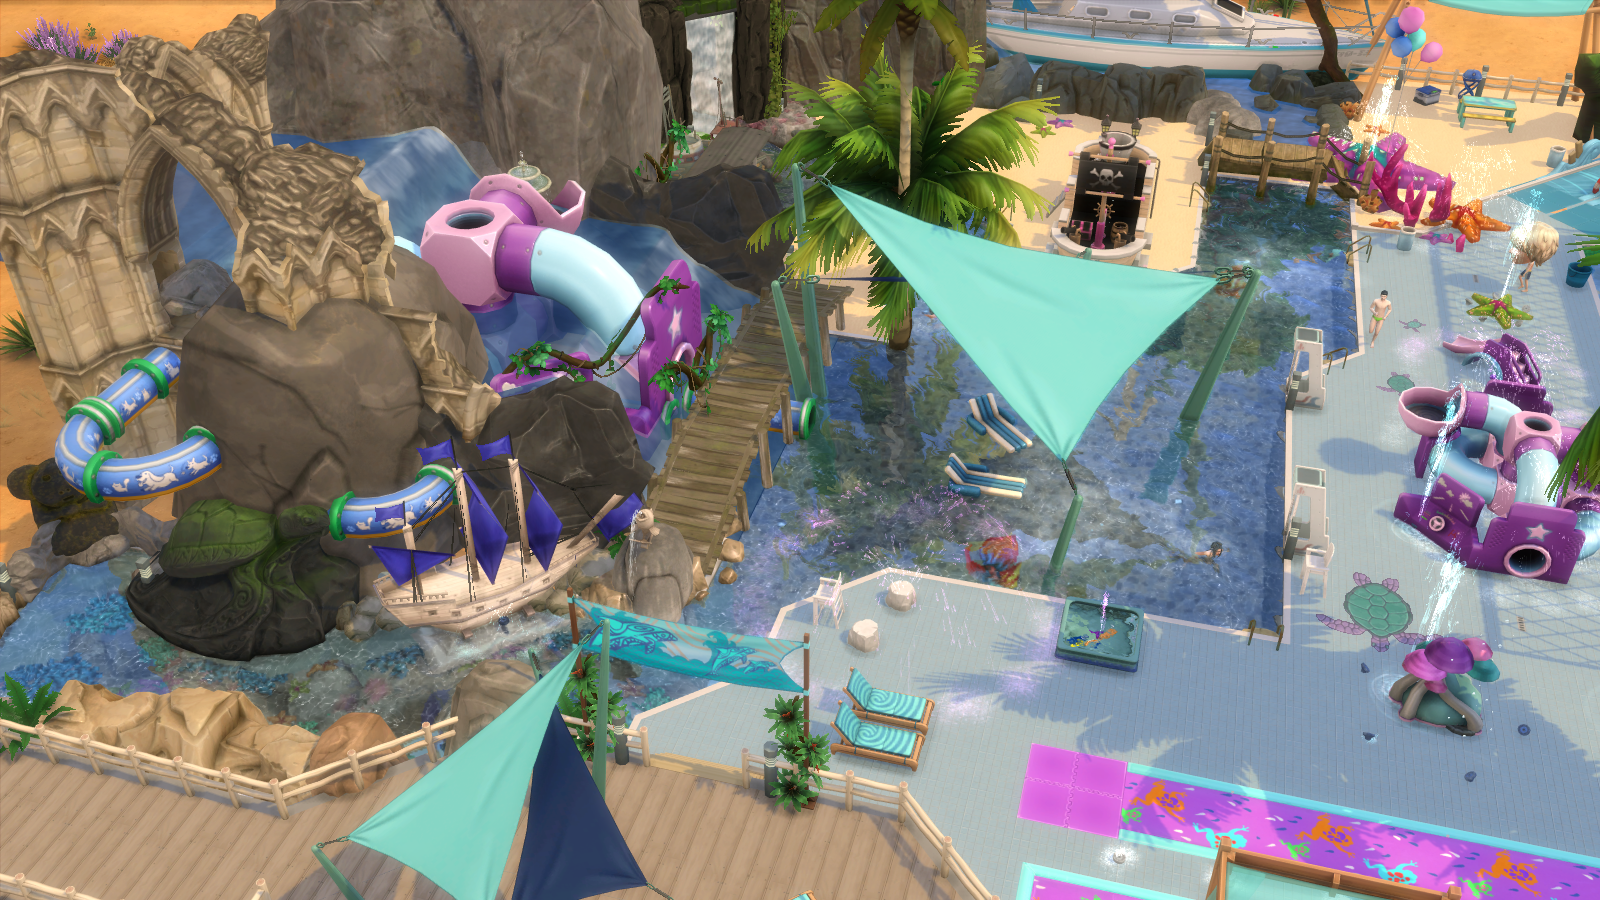 Lagoon Water Park for Sims 4